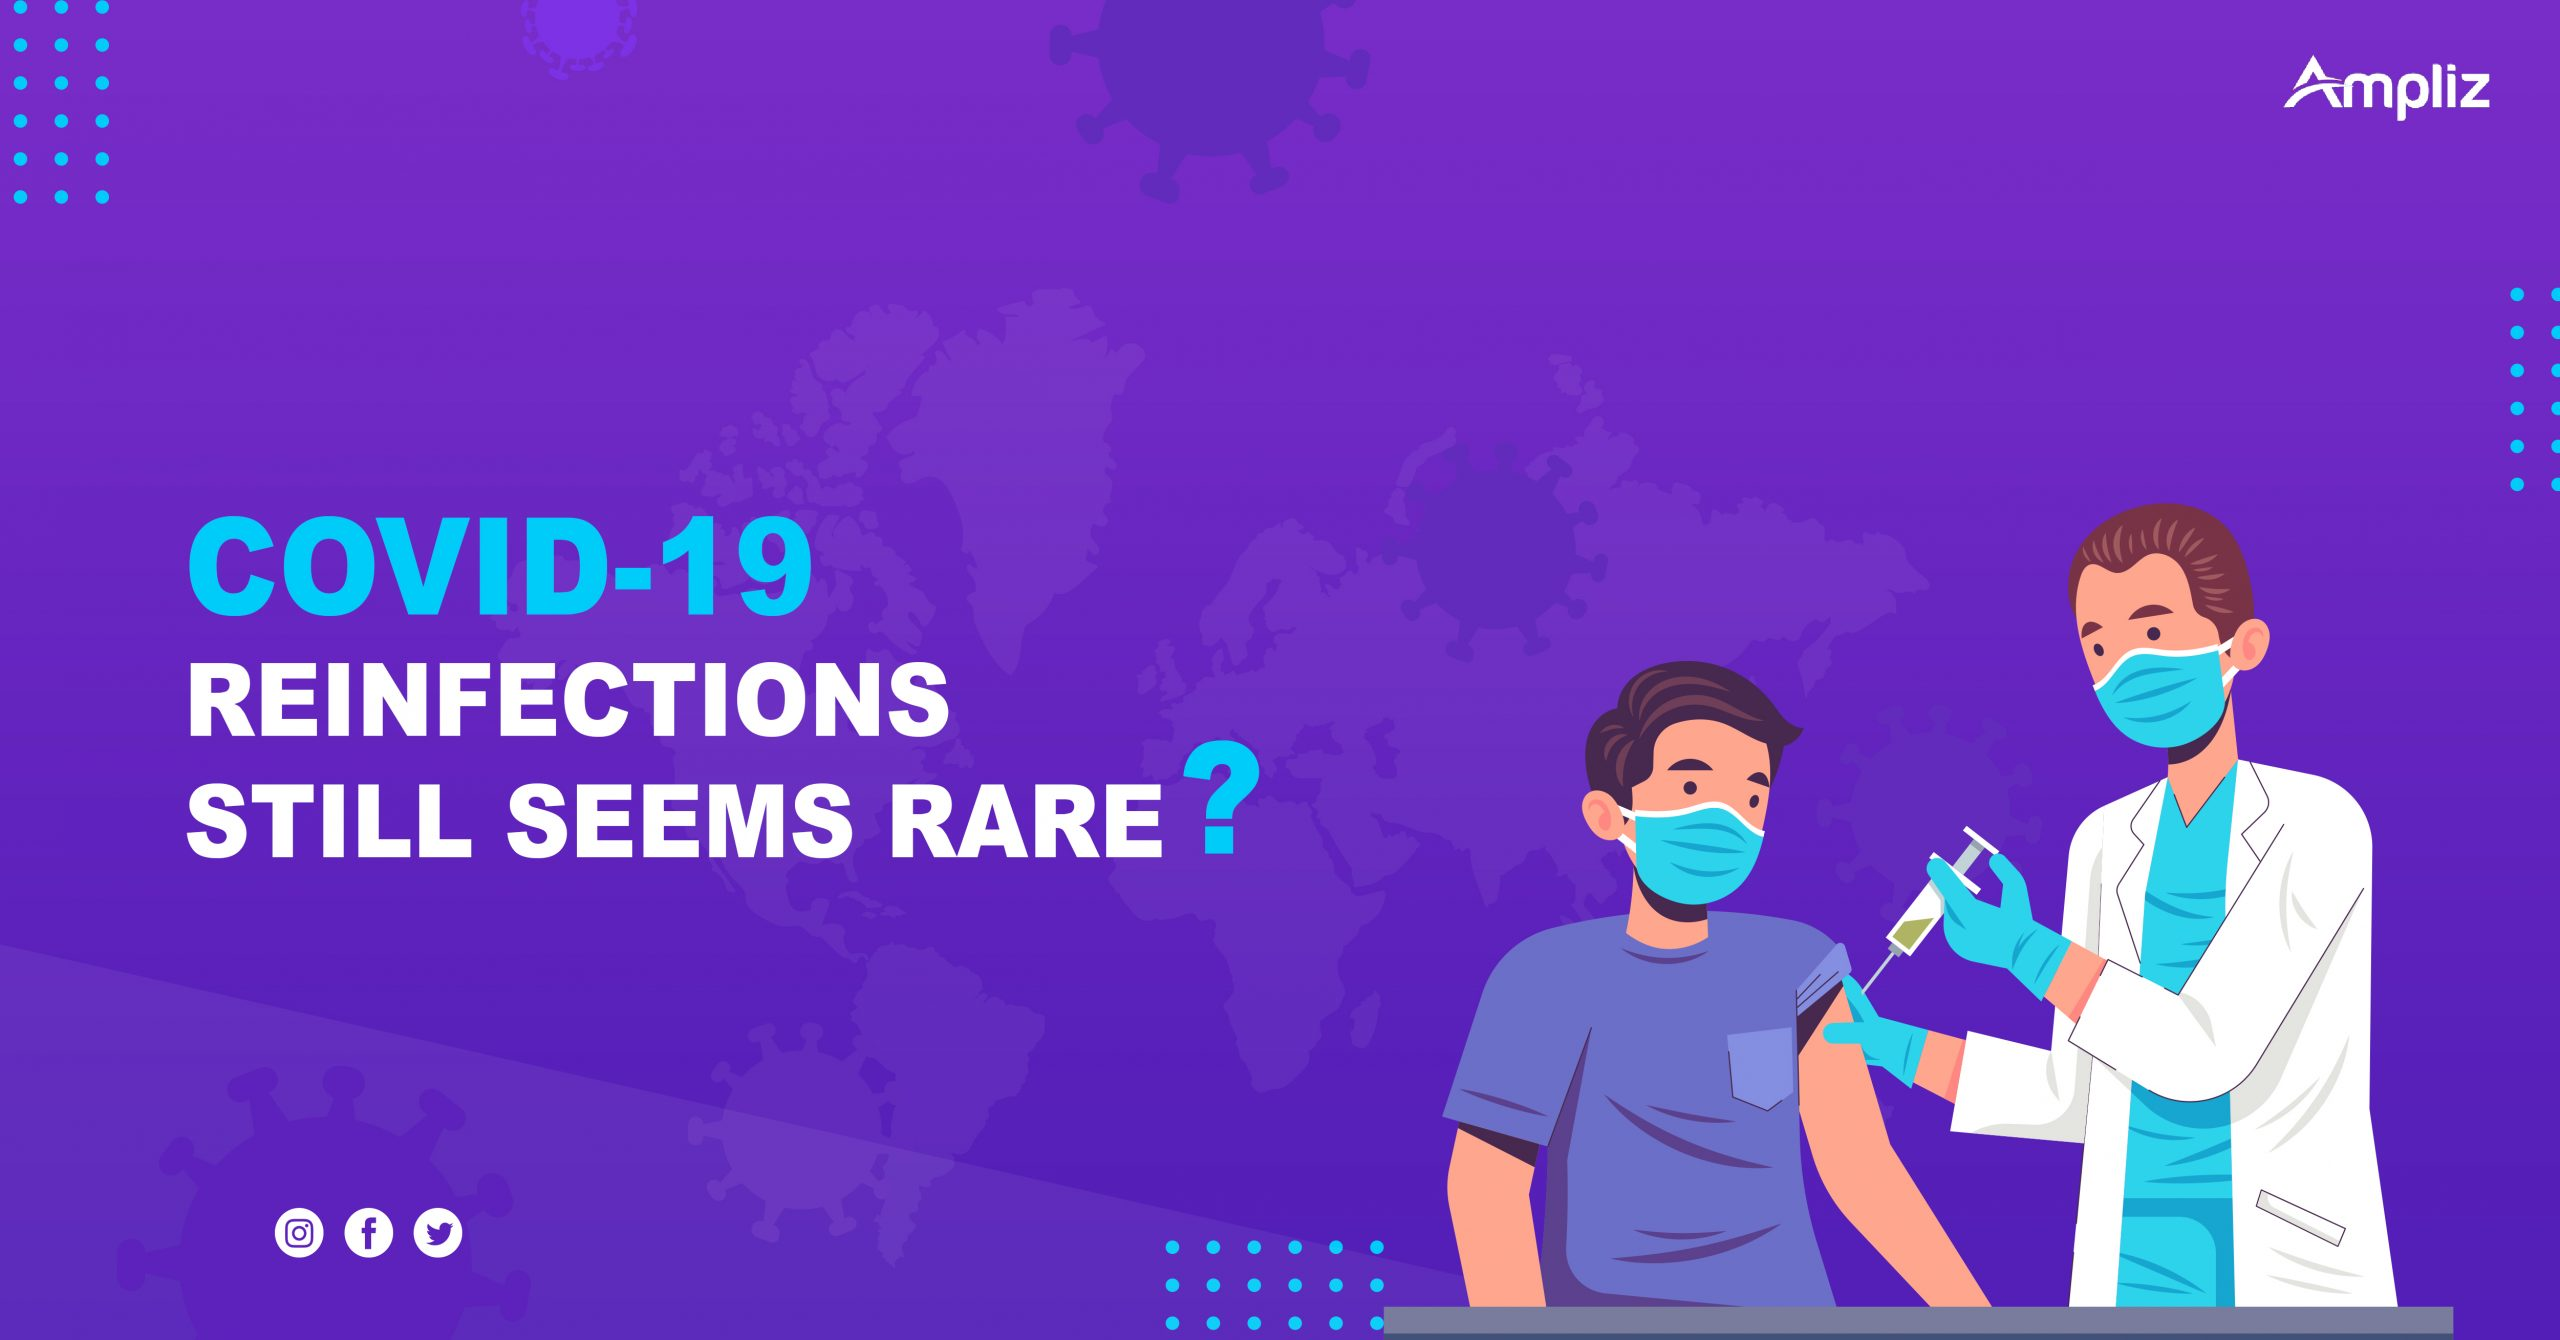 Covid-19 Reinfections